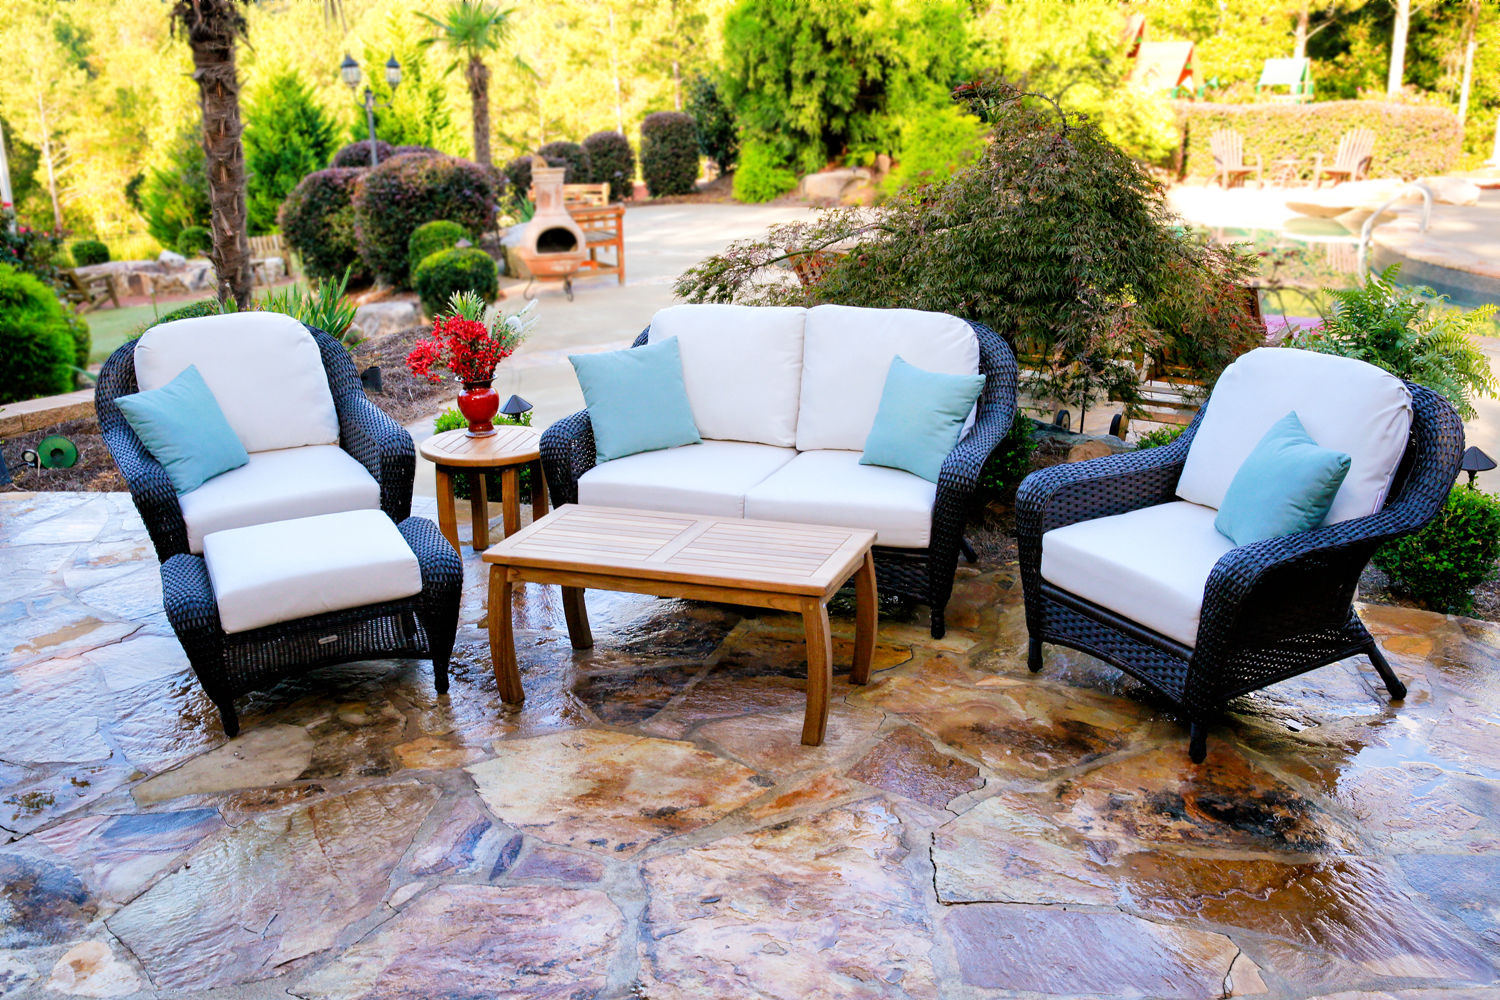 #182 - 6-PCS Loveseat & Chair Set with Jakarta Teak Coffee Table in Your Color Choice Wicker